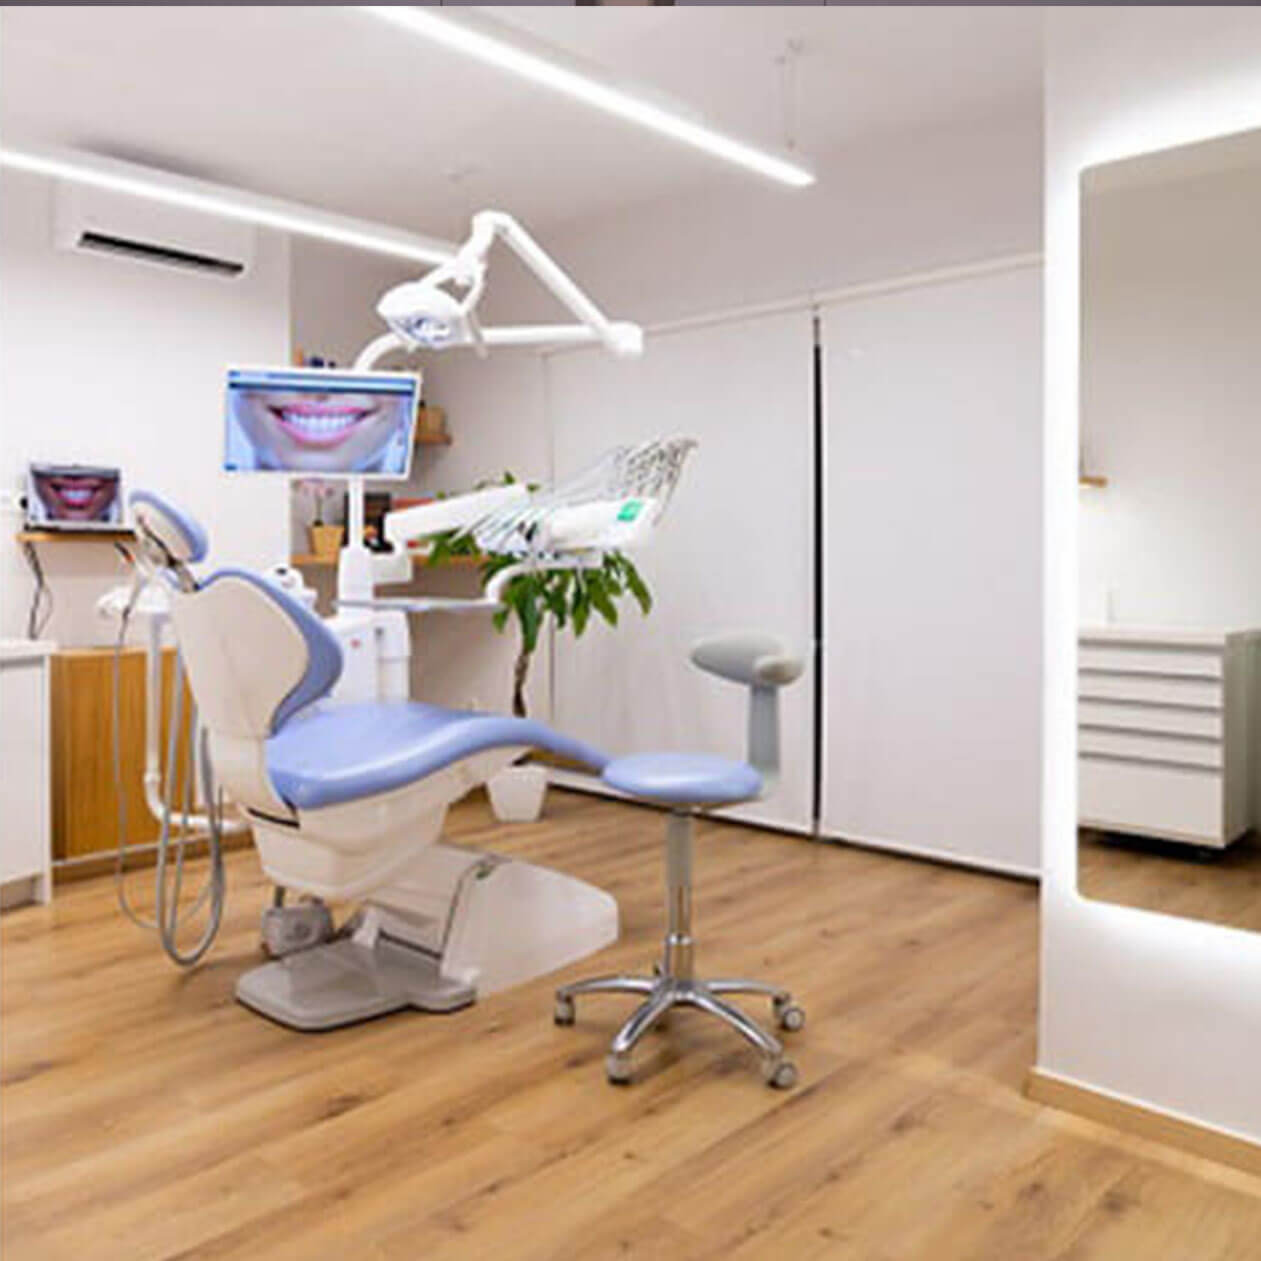 Clinic Renovation